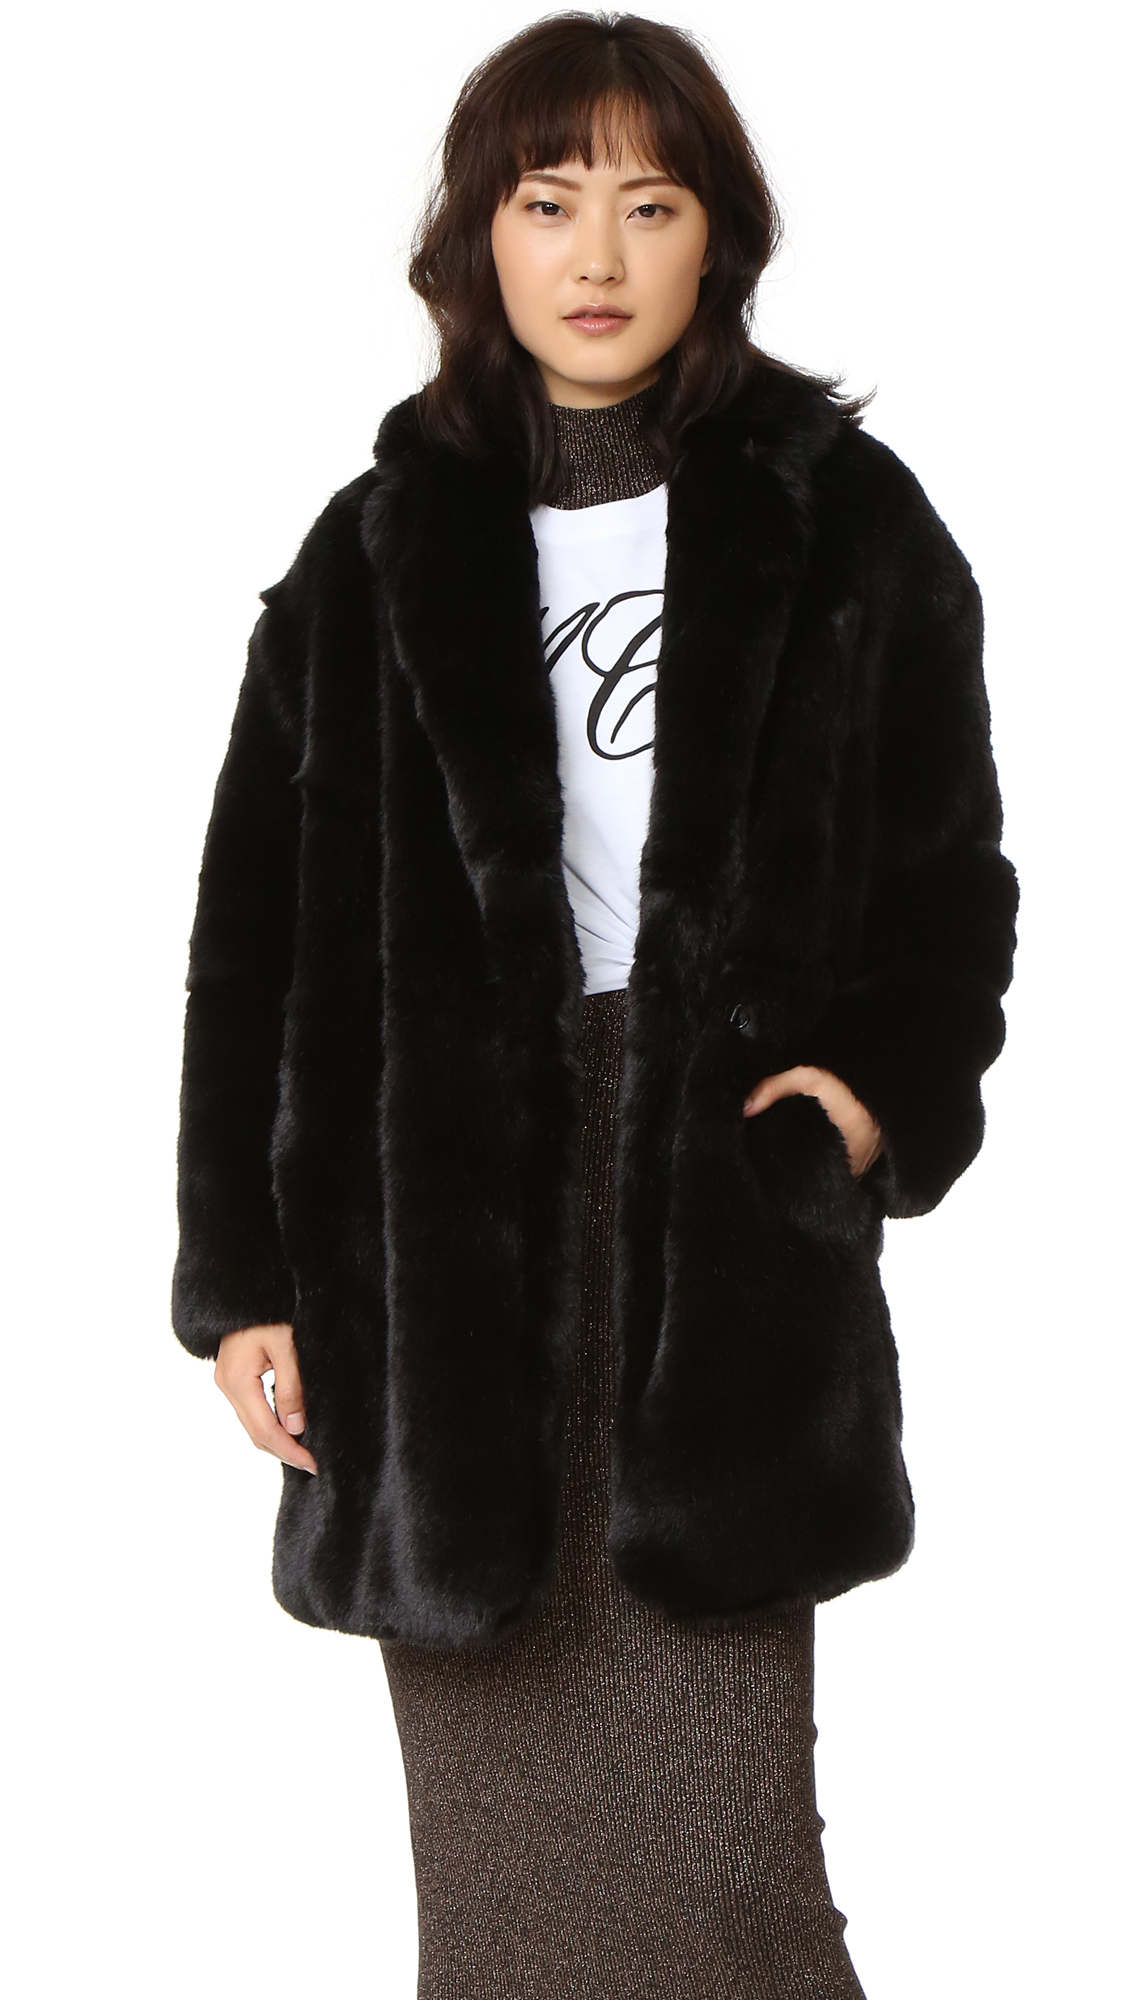 An oversized McQ   Alexander McQueen coat in plush faux fur. Shawl lapels join at the hook and eye placket. 2 pockets. Long sleeves. Lined. Fabric: Faux fur. Shell: 70% acrylic/18% modacrylic/12% polyester. Lining: 100% polyester. Dry clean. Imported, China.